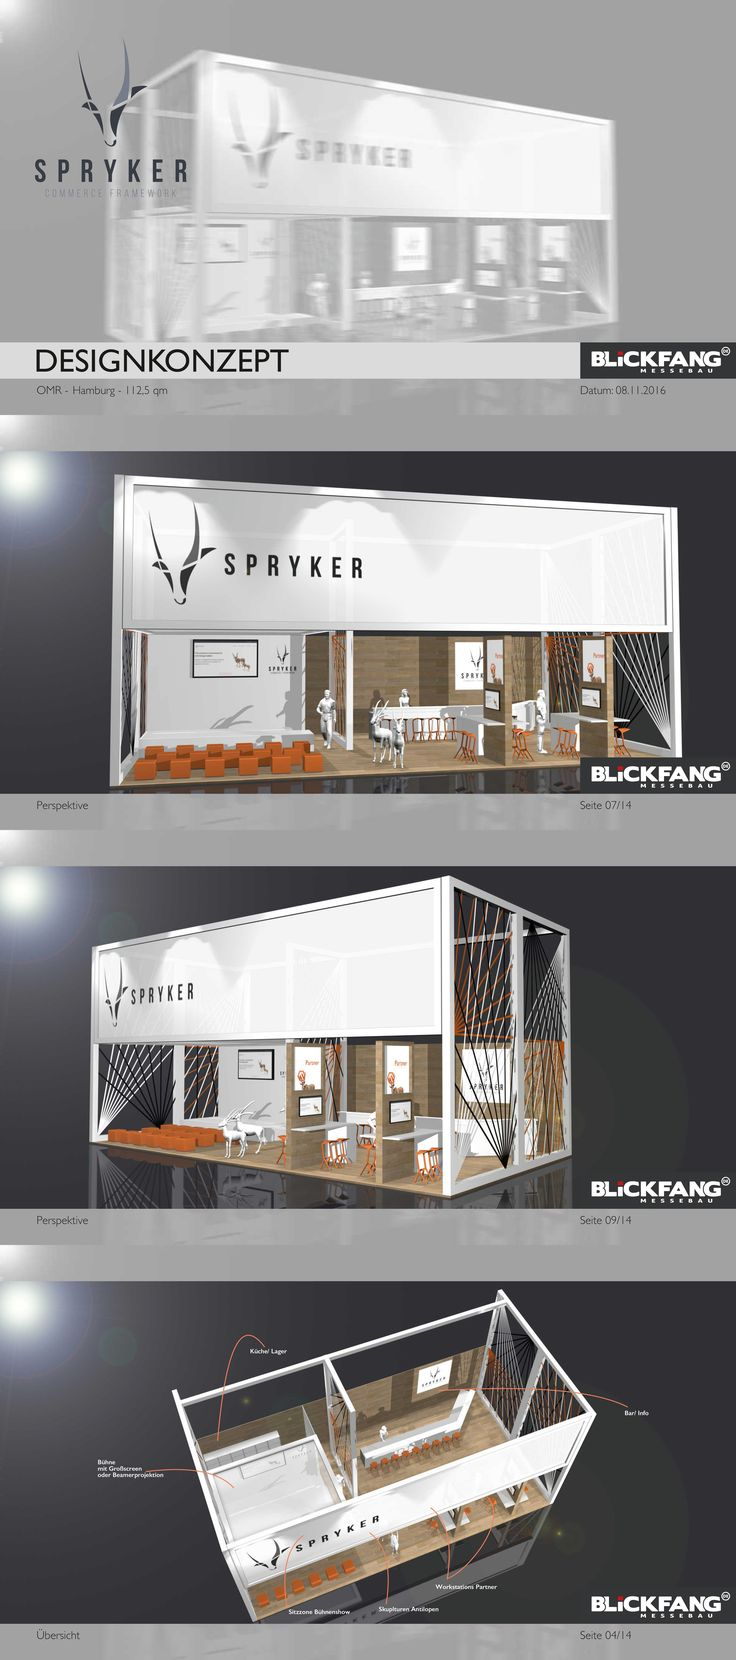 Entwurf für Spryker OMR in Hamburg #booth #Messestand #design #architektur